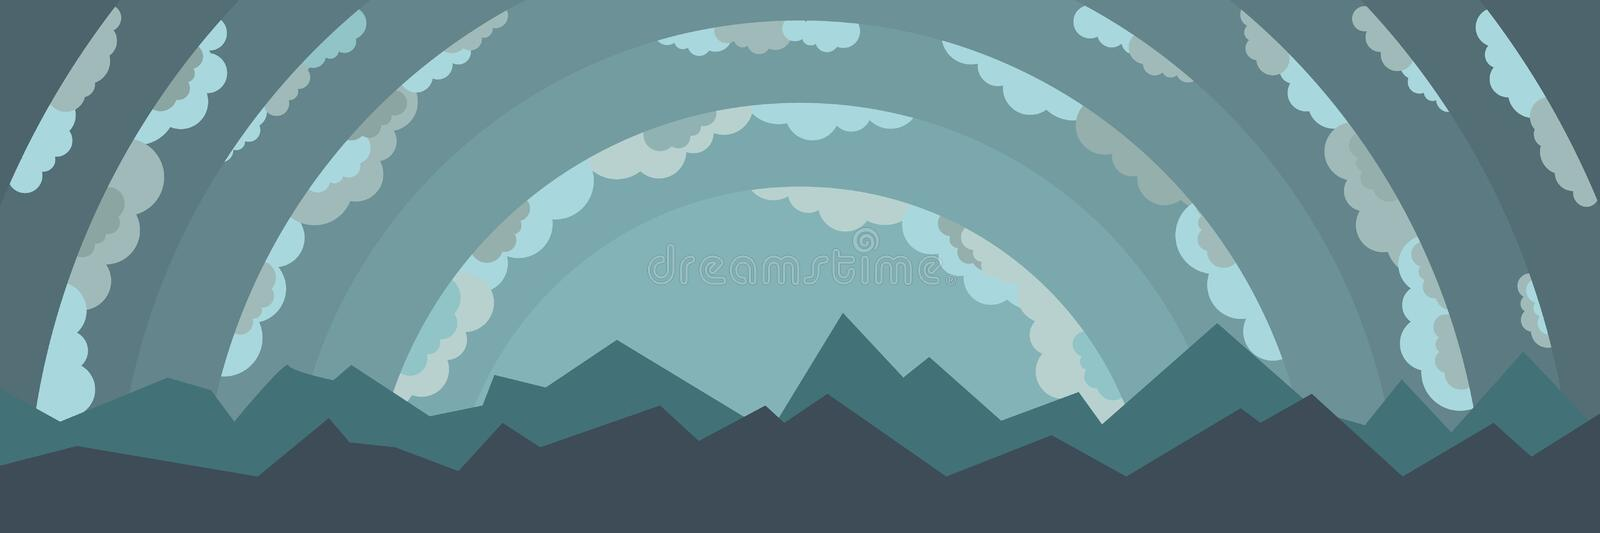 Landscape with mountains and clouds stock illustration